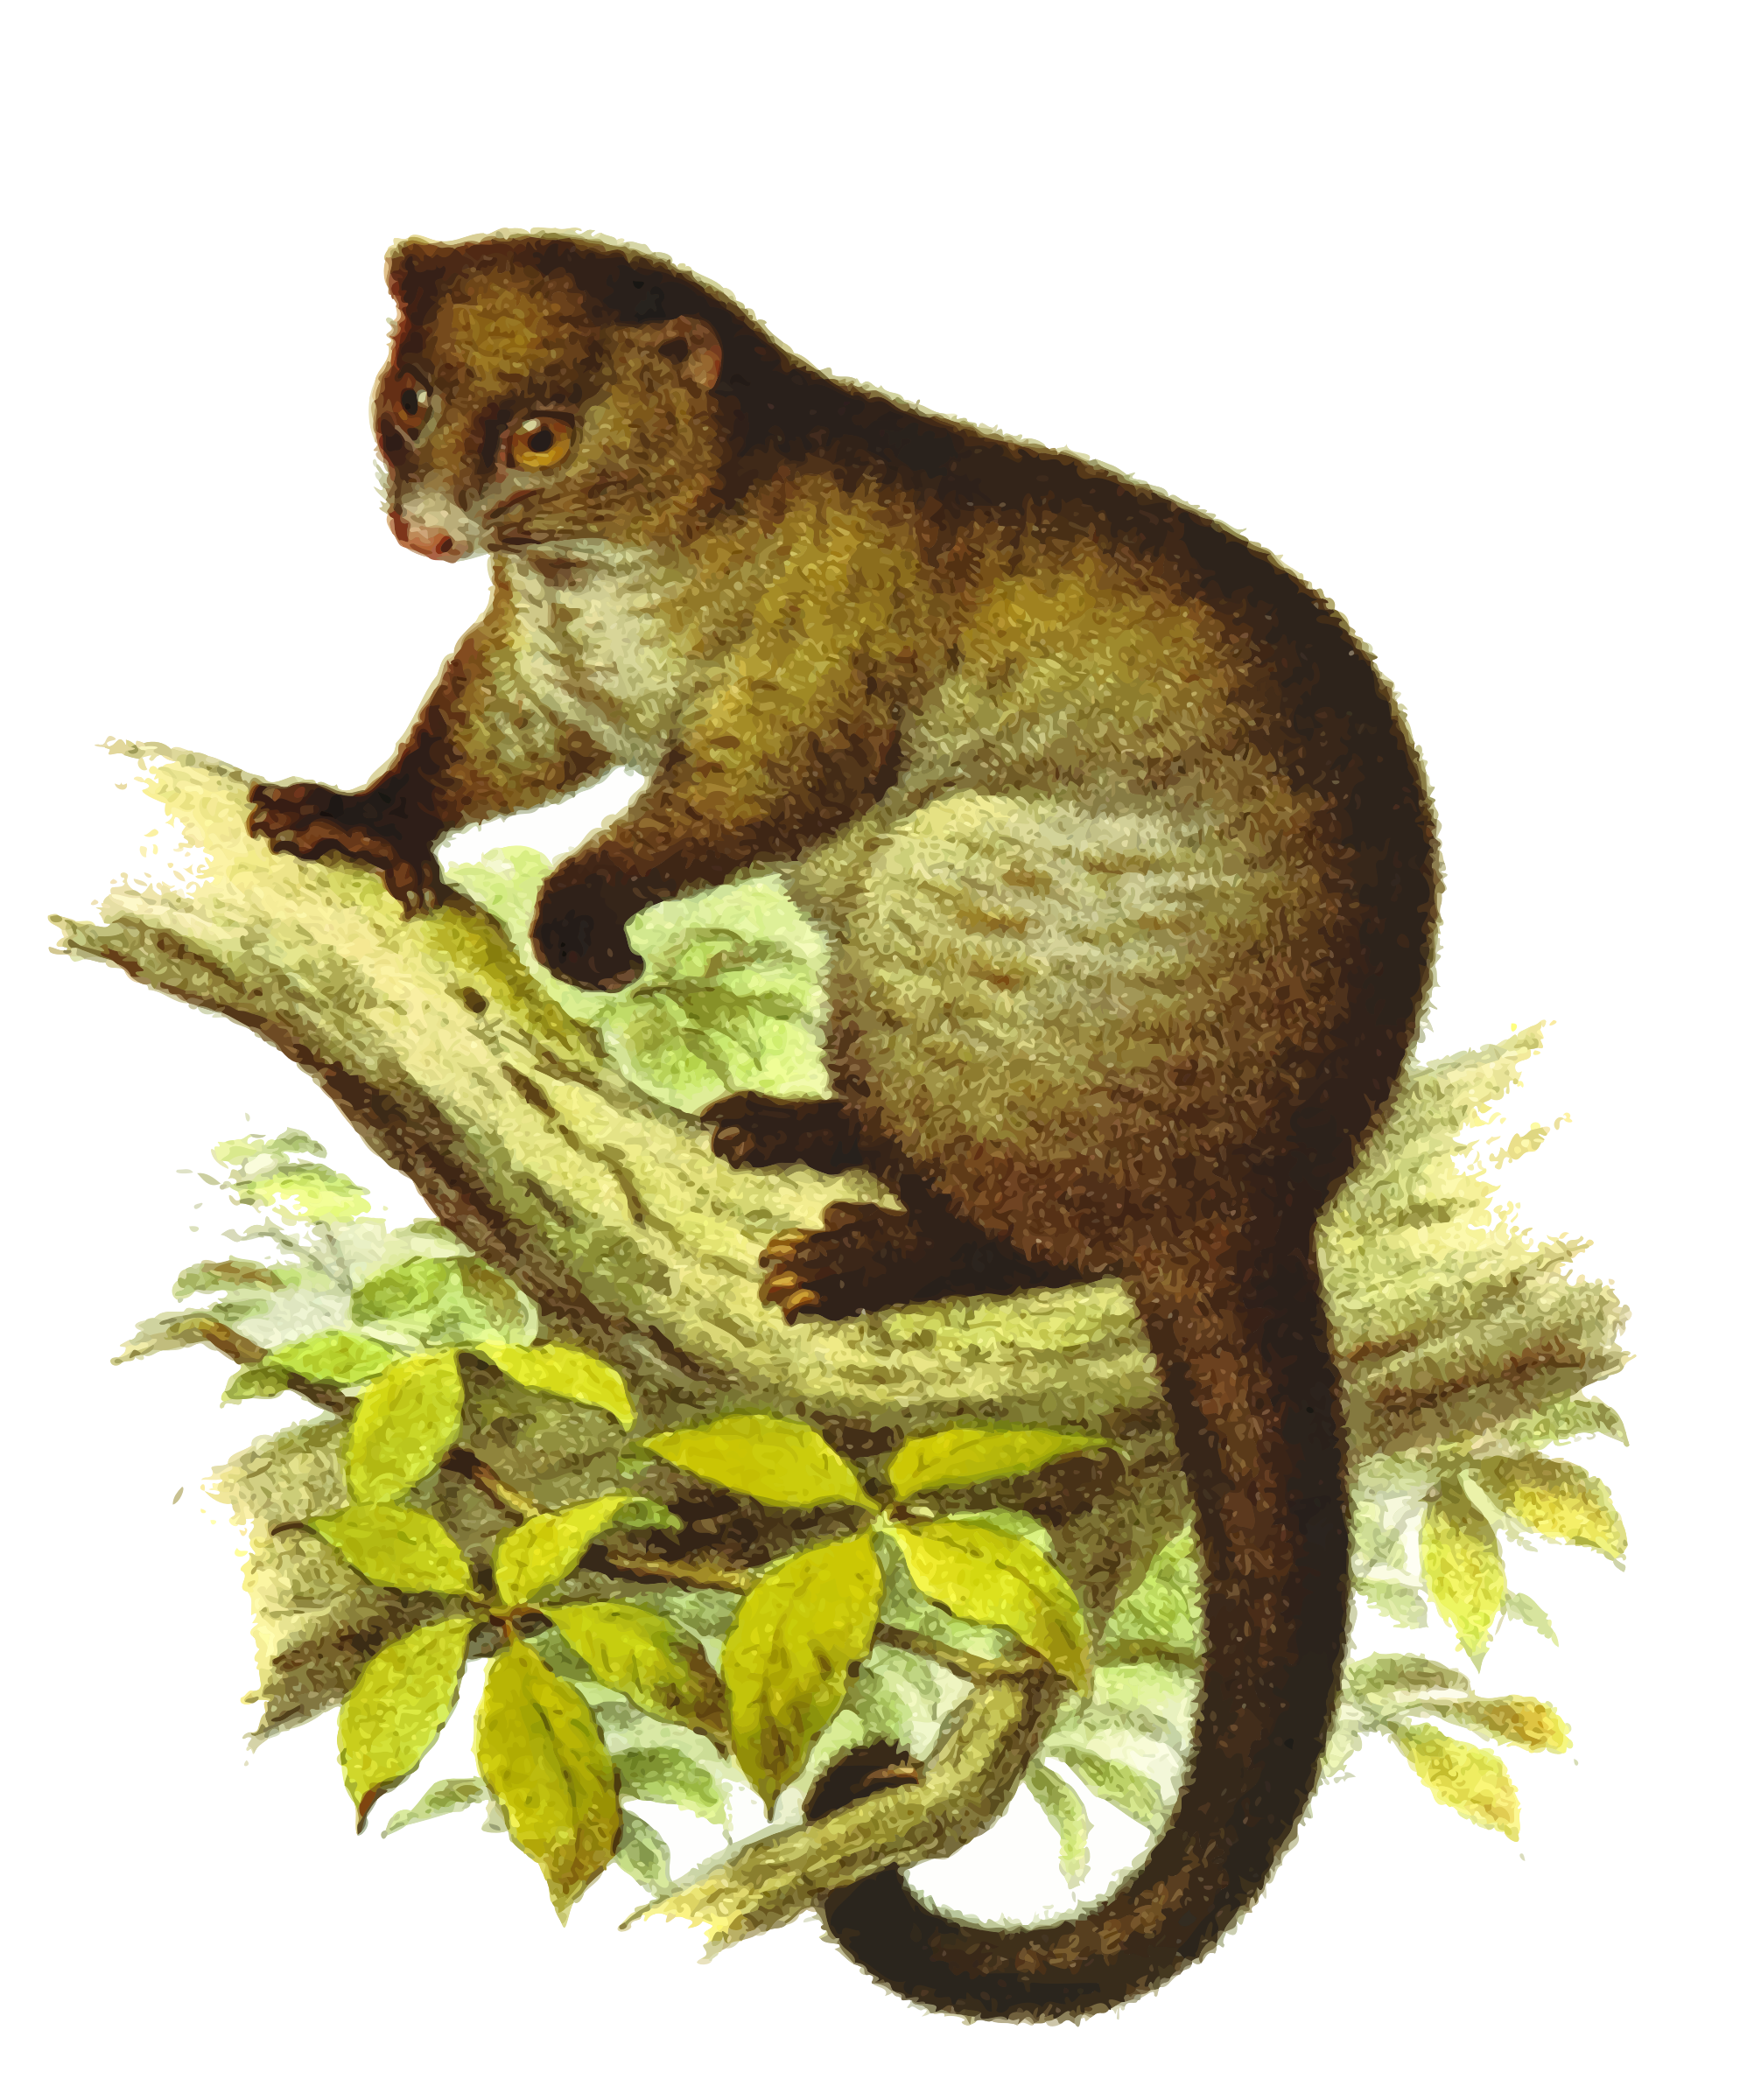 Lemuroid ringtail by Firkin